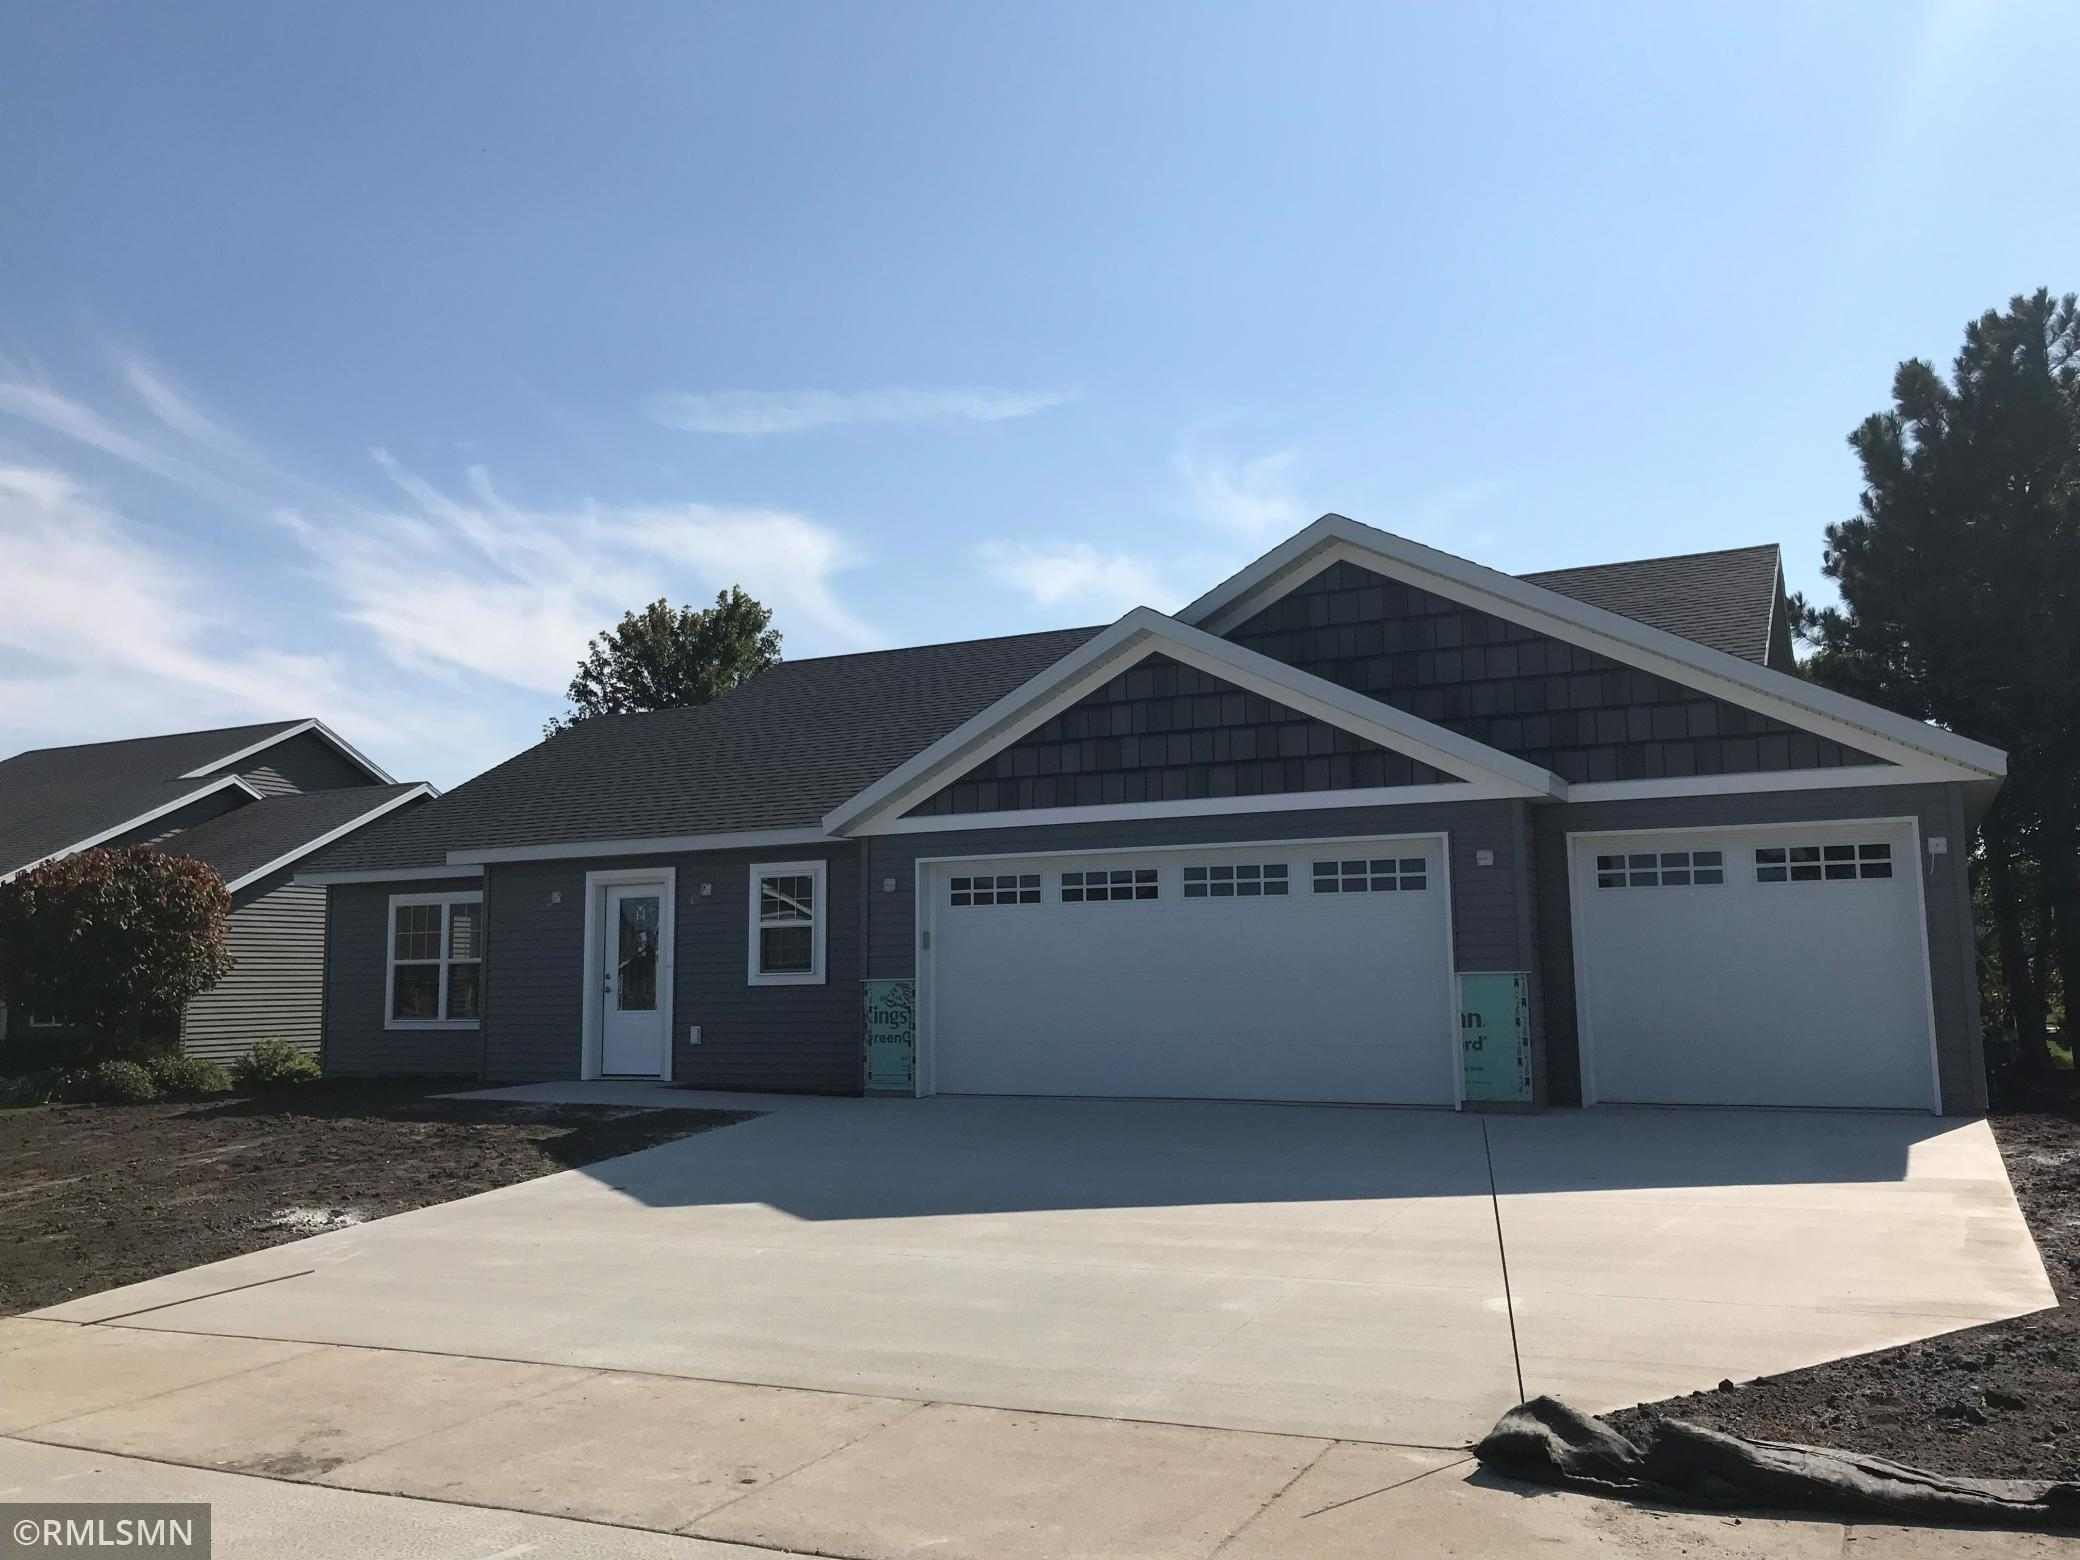 1684 SQ. FT. RAMBLER WITH THREE BEDROOMS - TWO BATHS - CUSTOM CABINETS - MASTER BEDROOM SUITE -  WALK-IN CLOSETS - INSULATED GARAGE - CENTRAL AIR  - VINYL SIDING -UNDERGROUND SPRINKLER- GREAT FLOOR PLAN.